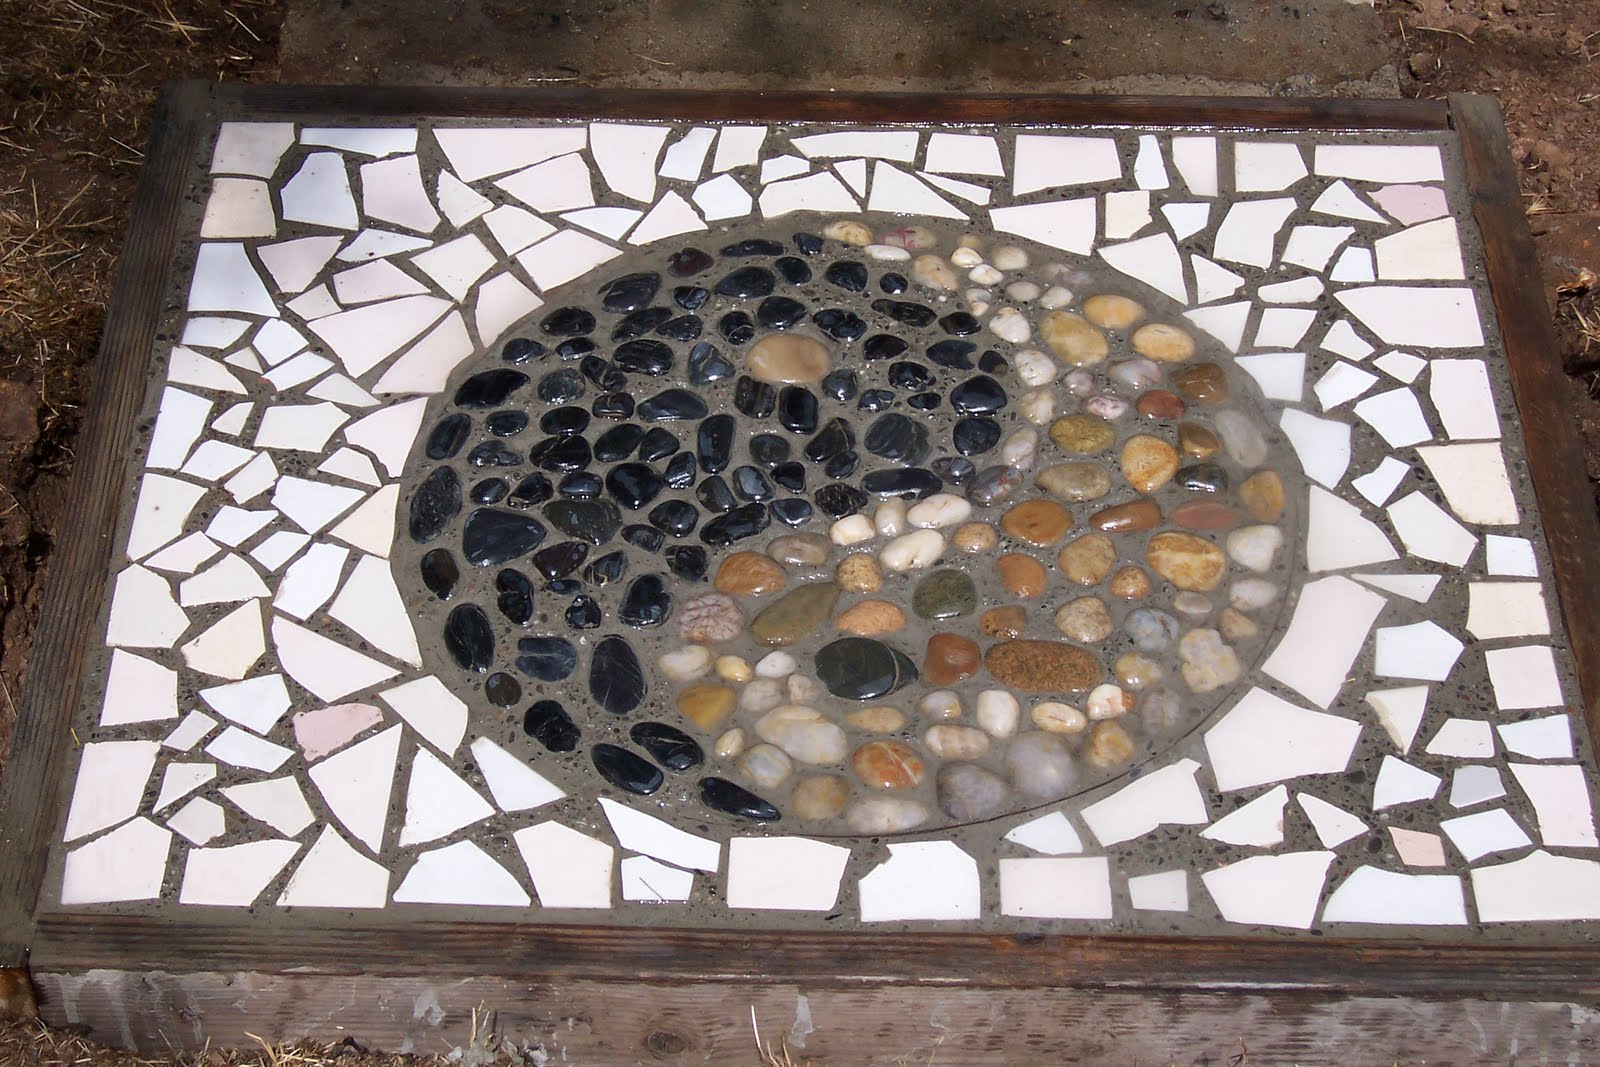 Recy queen yin yang stepping stone pebble mosaic of yin yang taoist symbol with broken tile mosaic border about 20x24 we are making a walkway of symbols dailygadgetfo Gallery